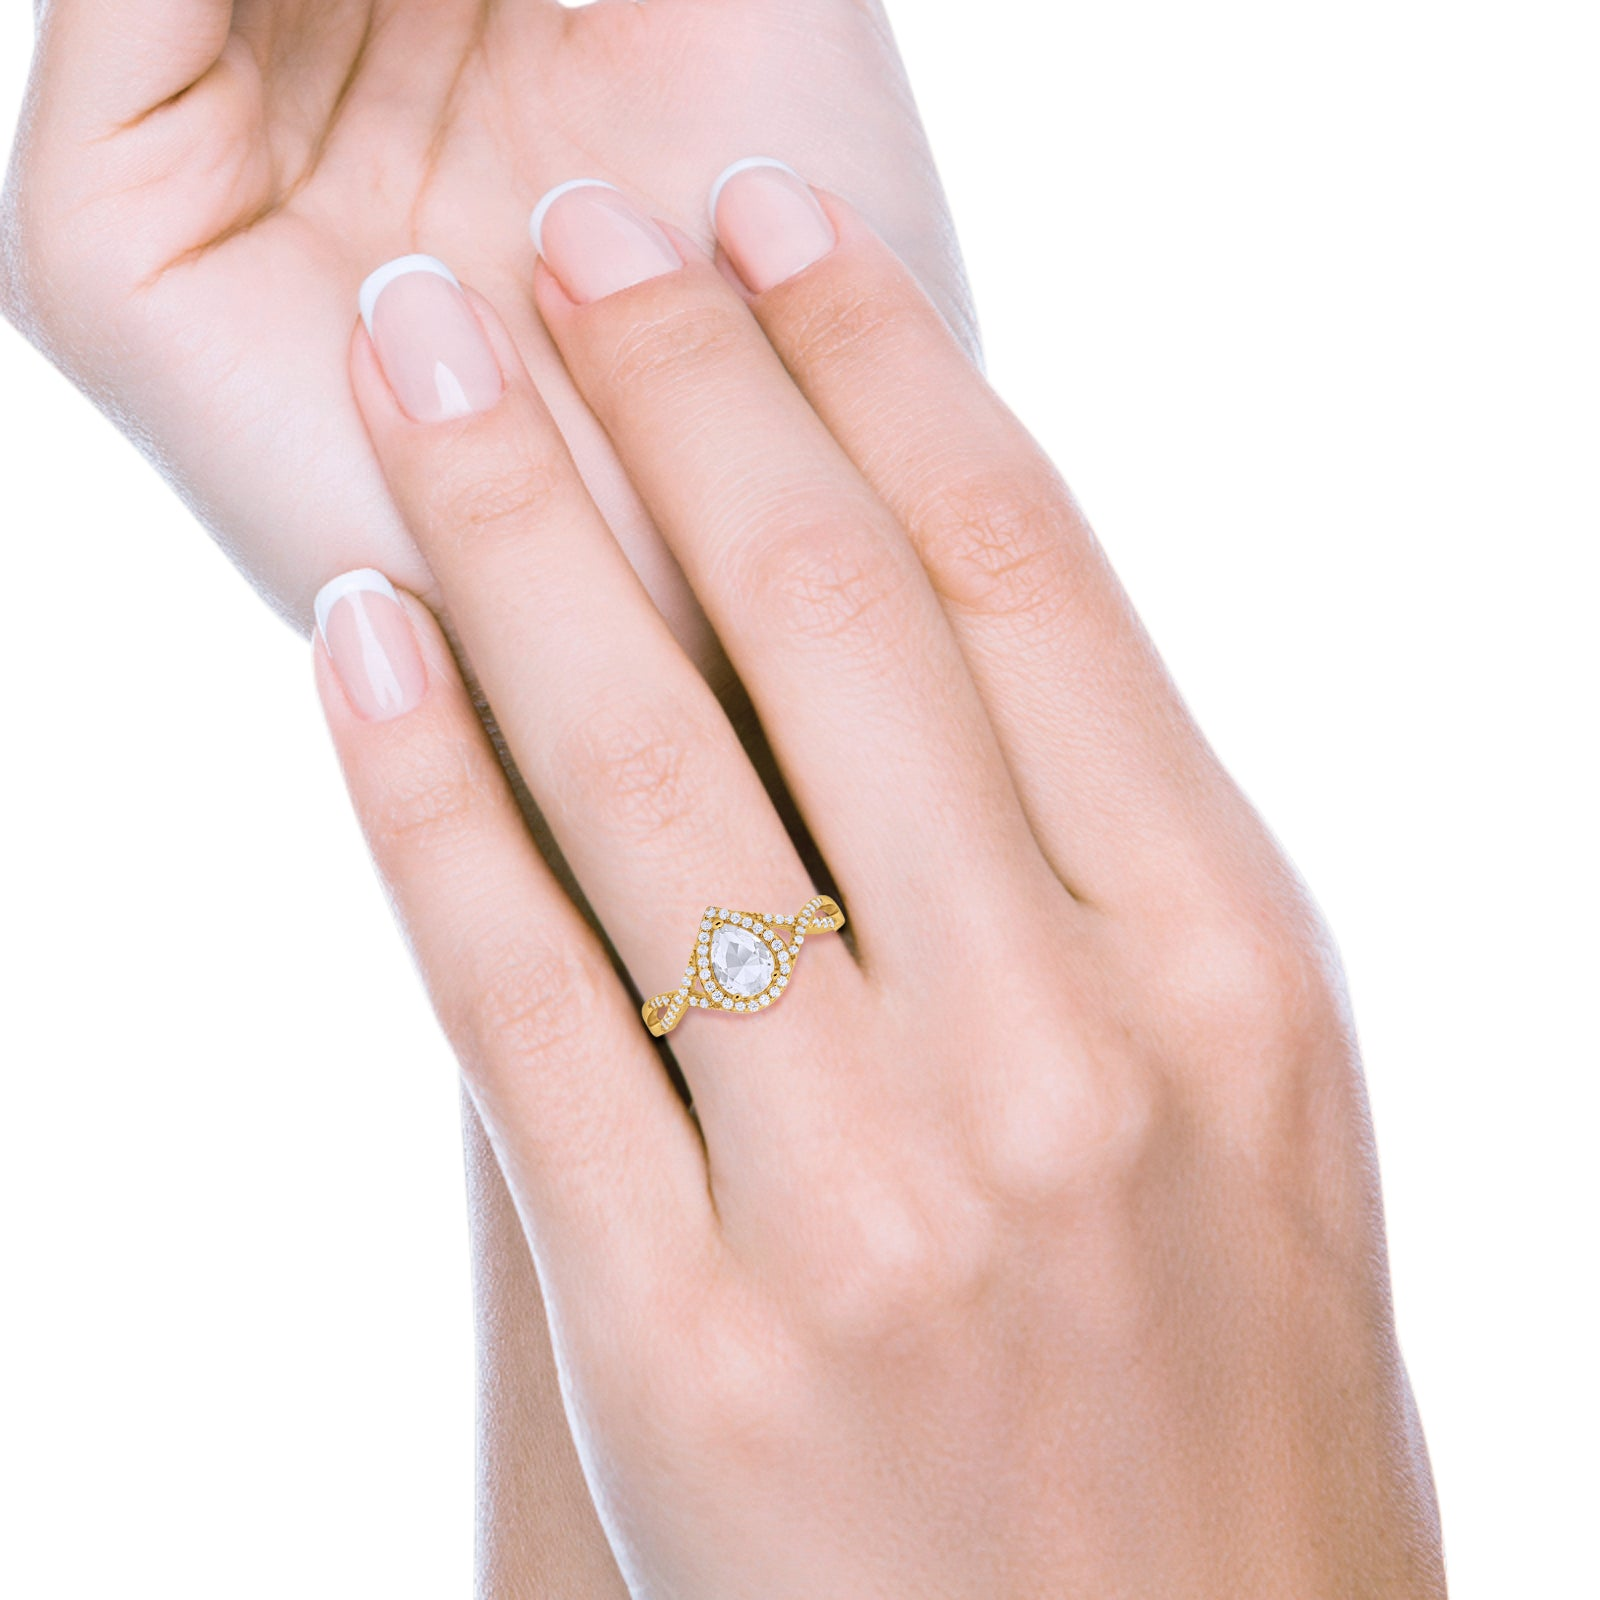 Teardrop Wedding Promise Ring Round Yellow Tone, Simulated CZ 925 Sterling Silver